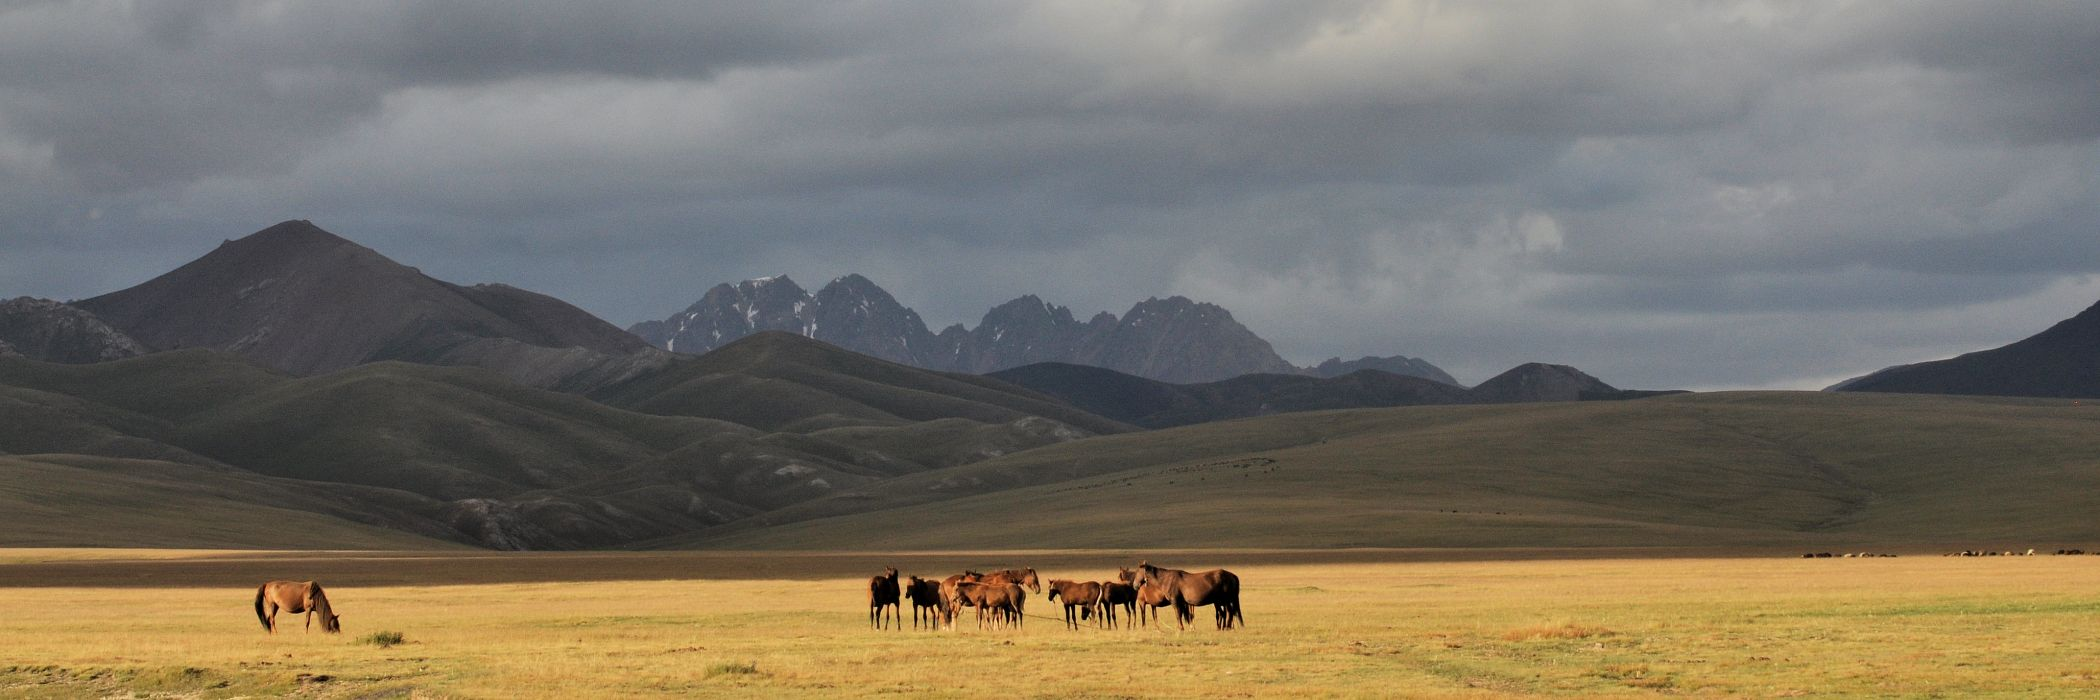 Horses on the Kyrgyz Steppe